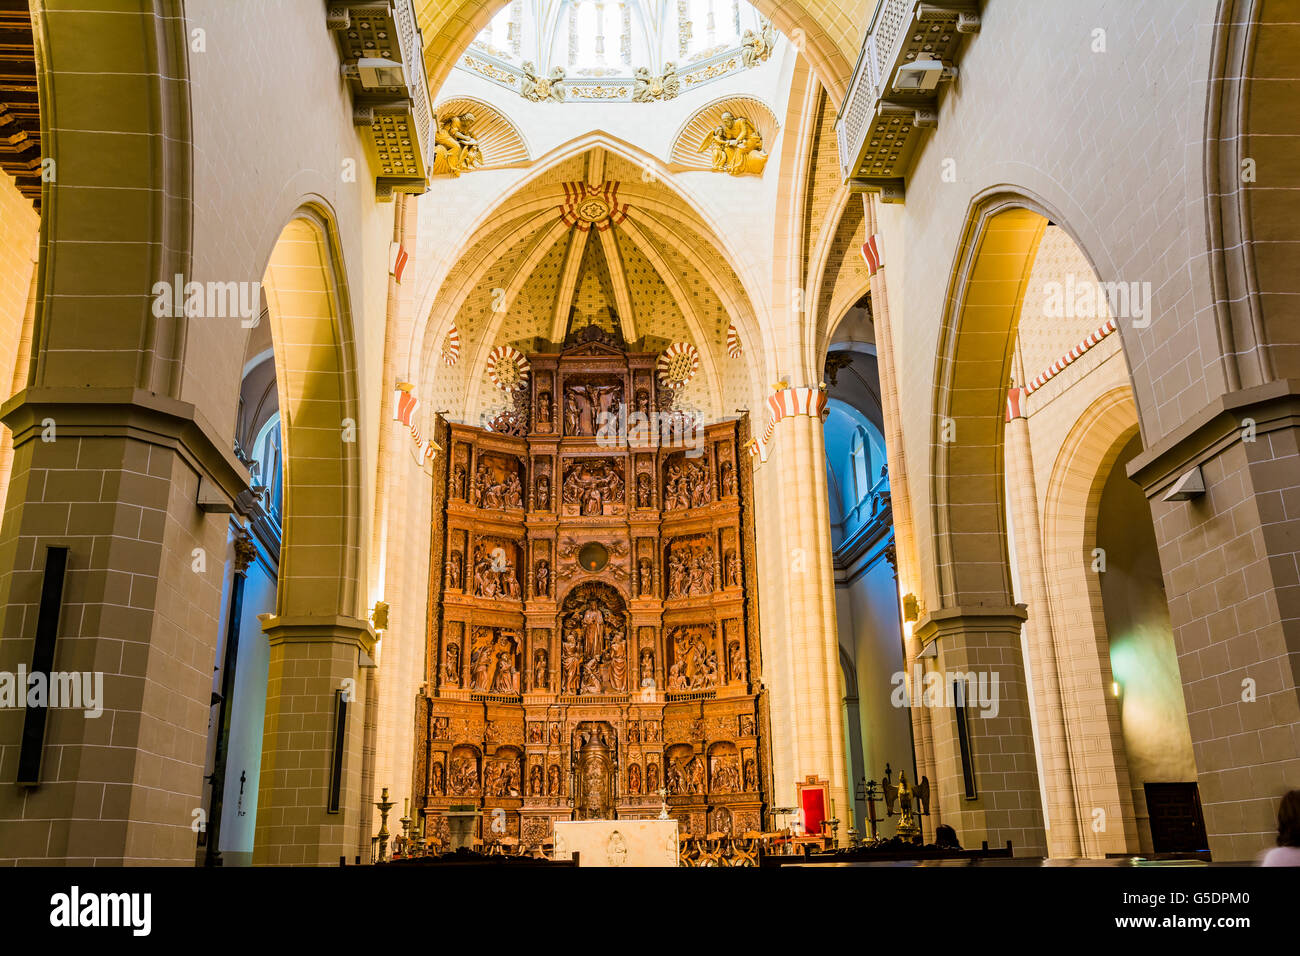 The Cathedral of Teruel, entitled to St. Mary, it is a notable example of Mudéjar architecture. - Stock Image